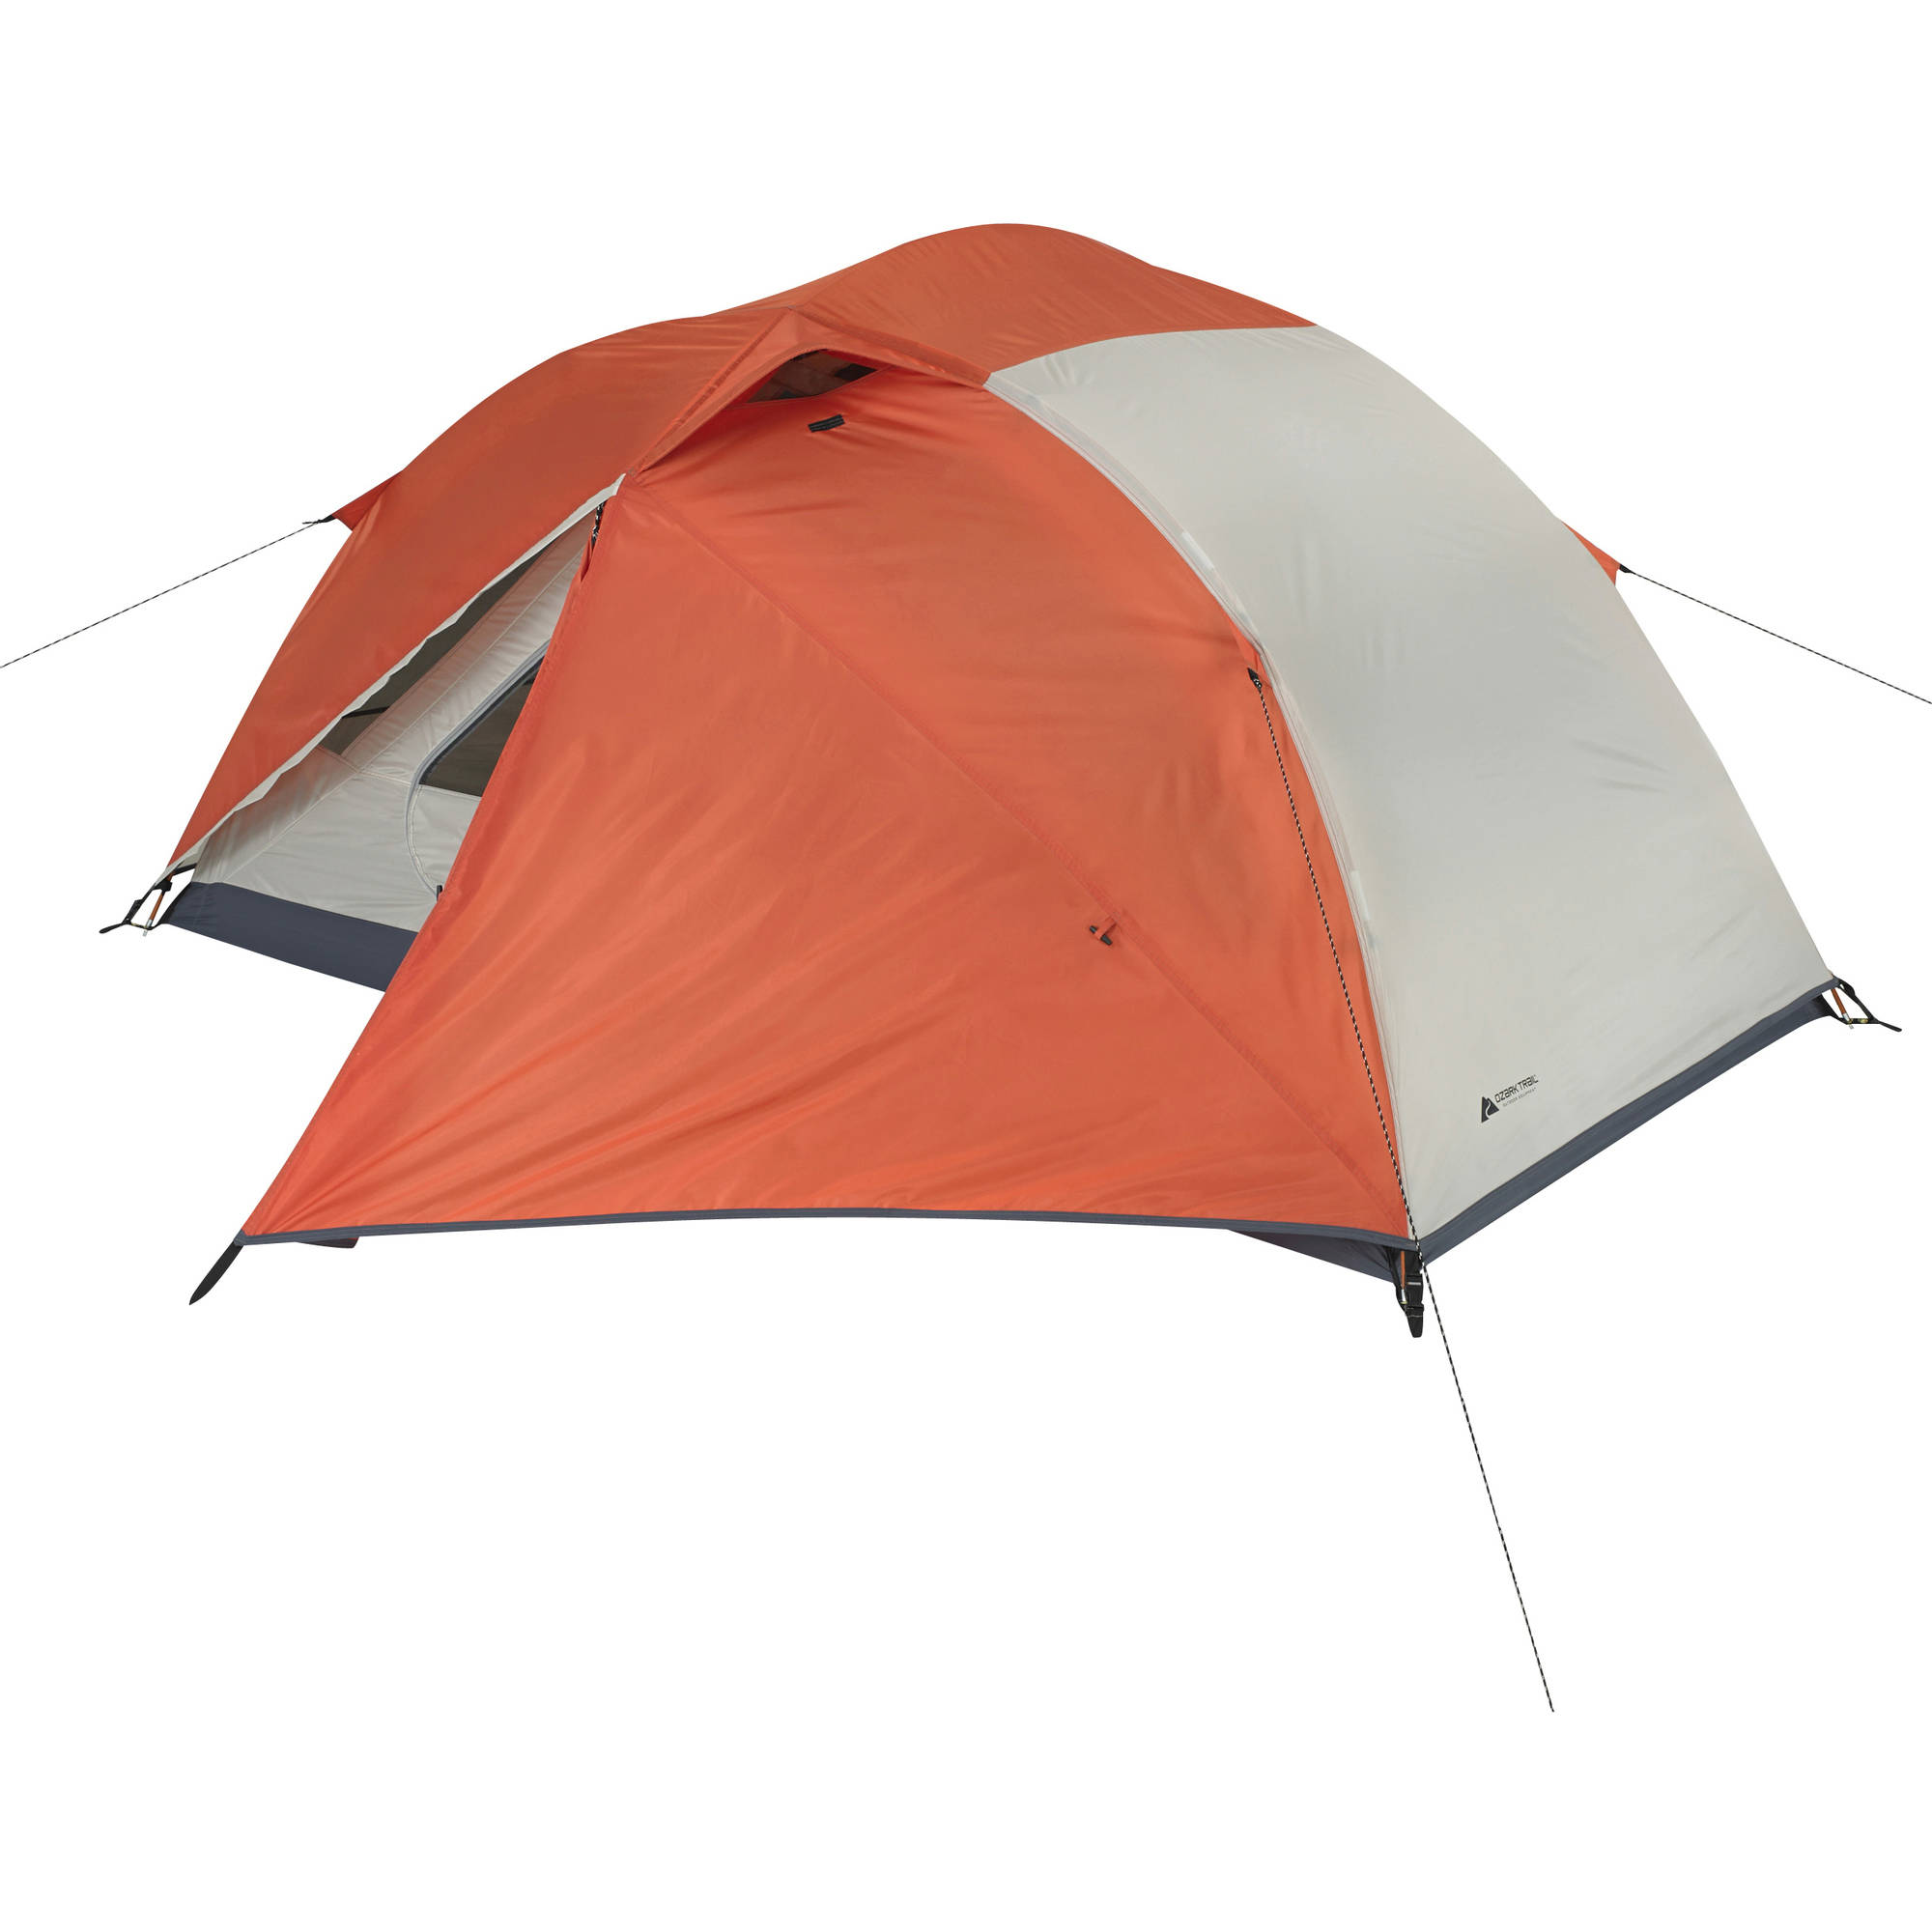 Ozark Trail 2-Person 4-Season Backpacking Tent  sc 1 st  Walmart & Ozark Trail 2-Person 4-Season Backpacking Tent - Walmart.com